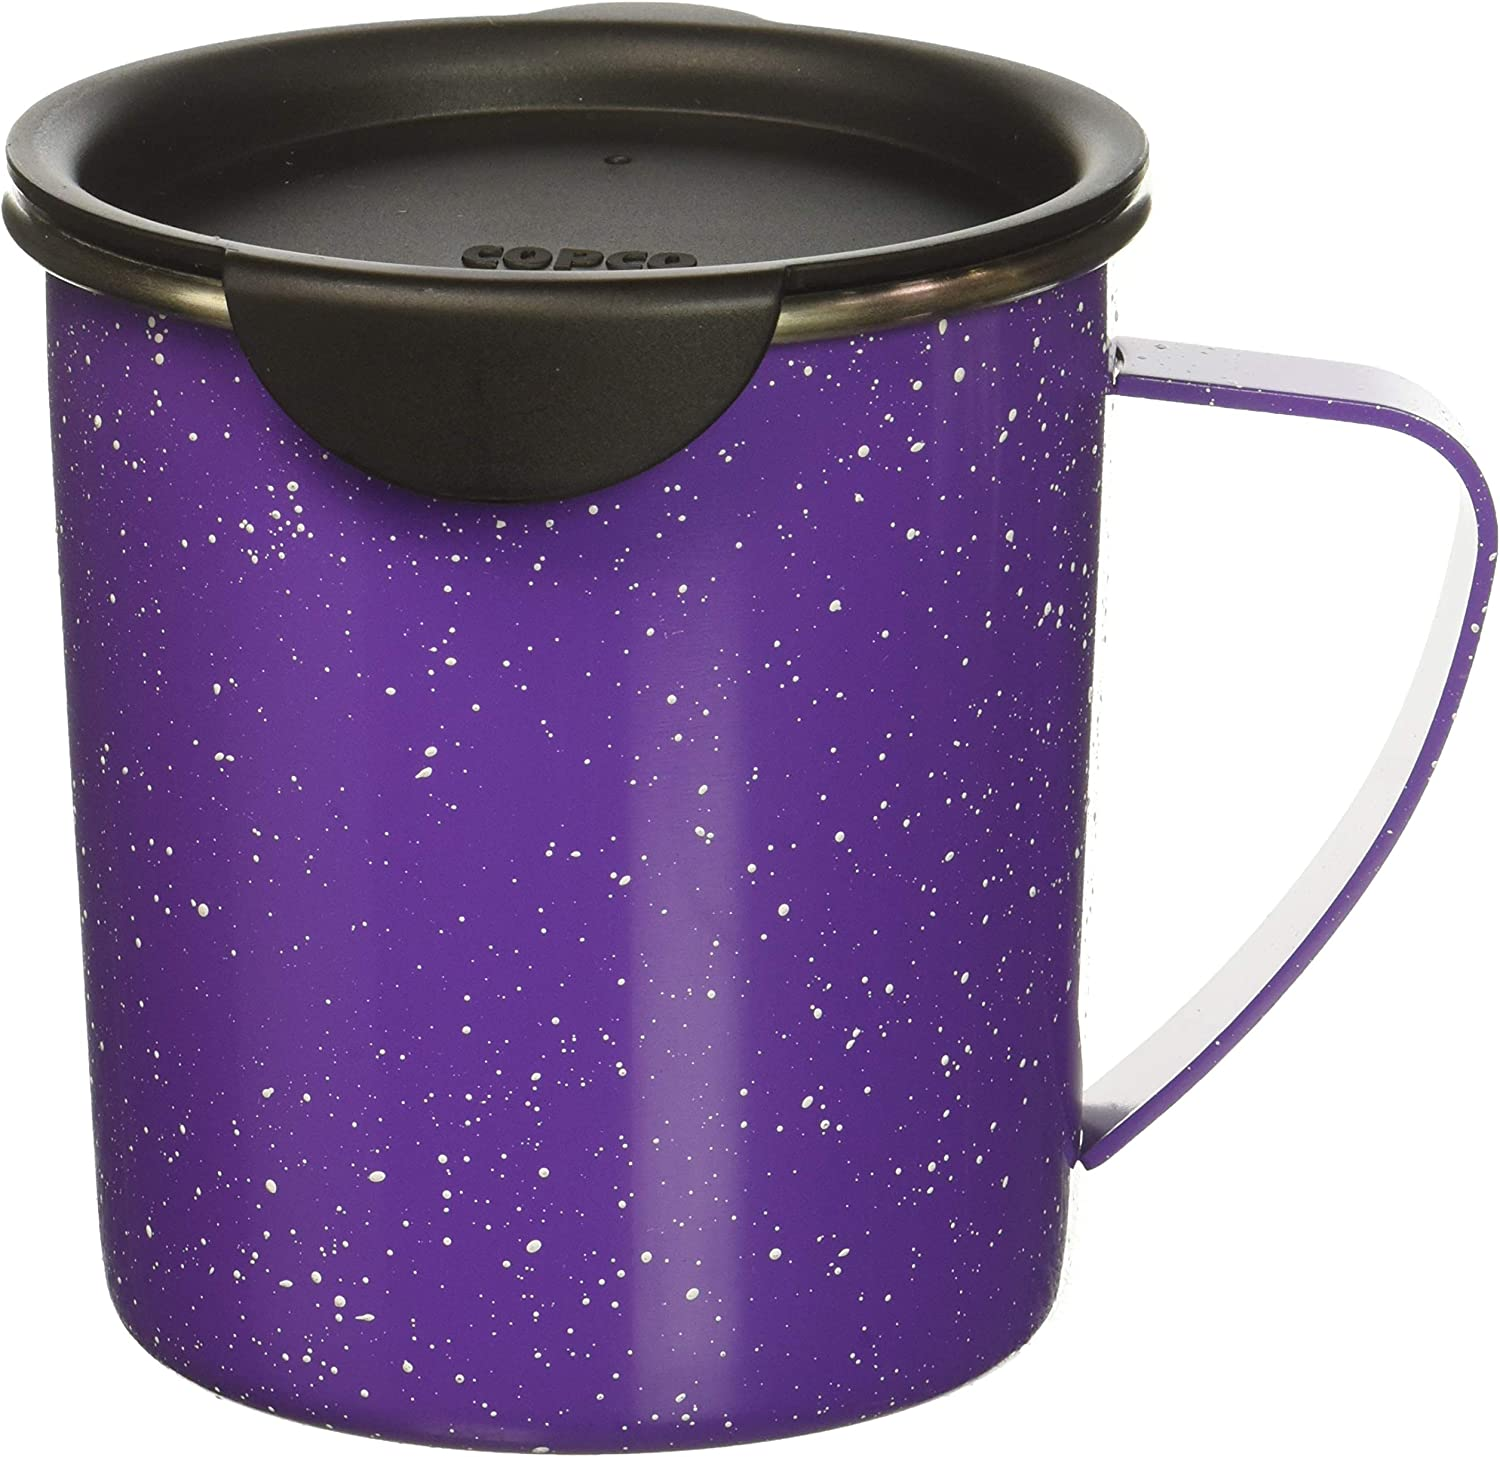 Copco Tin Cup Camping Style Stainless Steel Coffee Mug with Lid, 16-Ounce, Purple